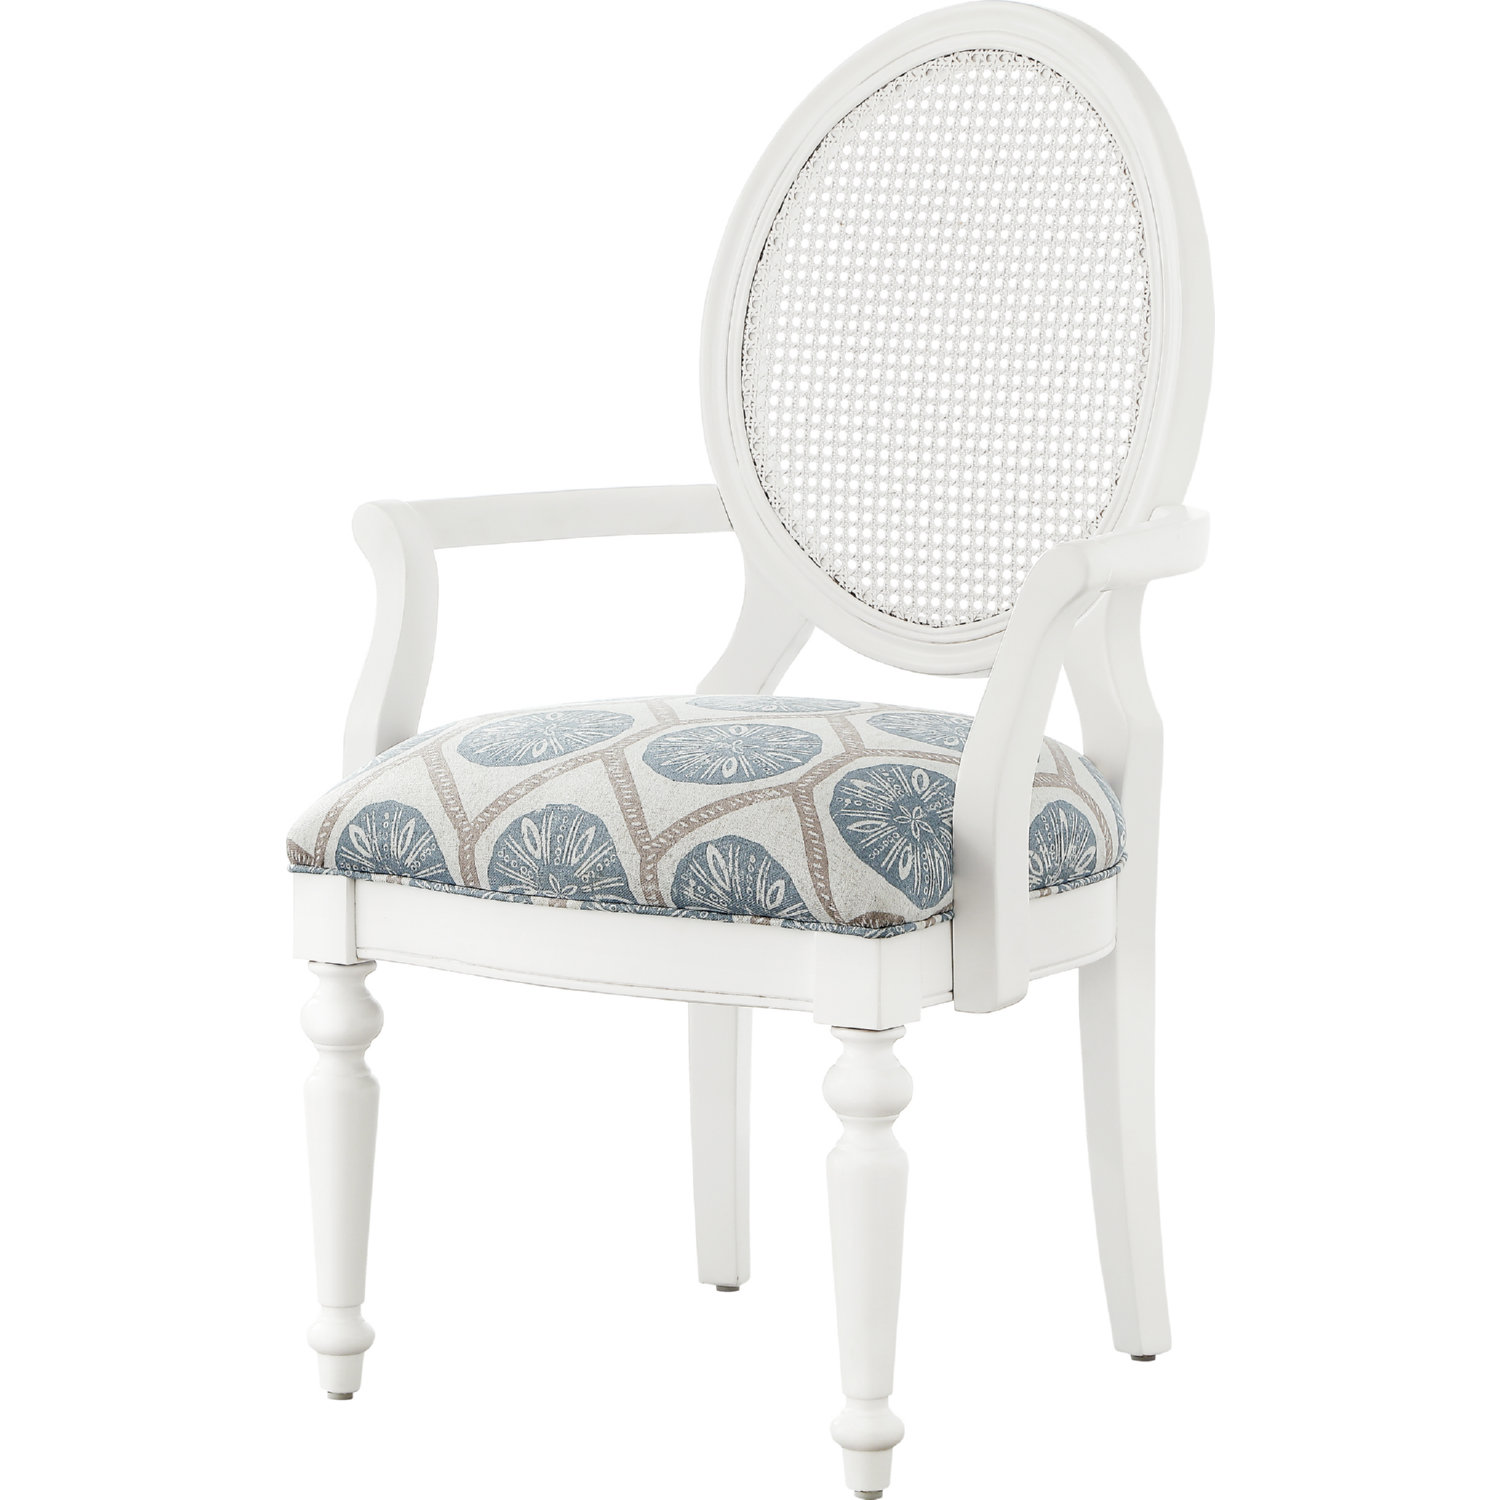 Surprising Cilia Accent Chair In White Wood Rattan W Multicolor Fabric Seat By Powell Gamerscity Chair Design For Home Gamerscityorg